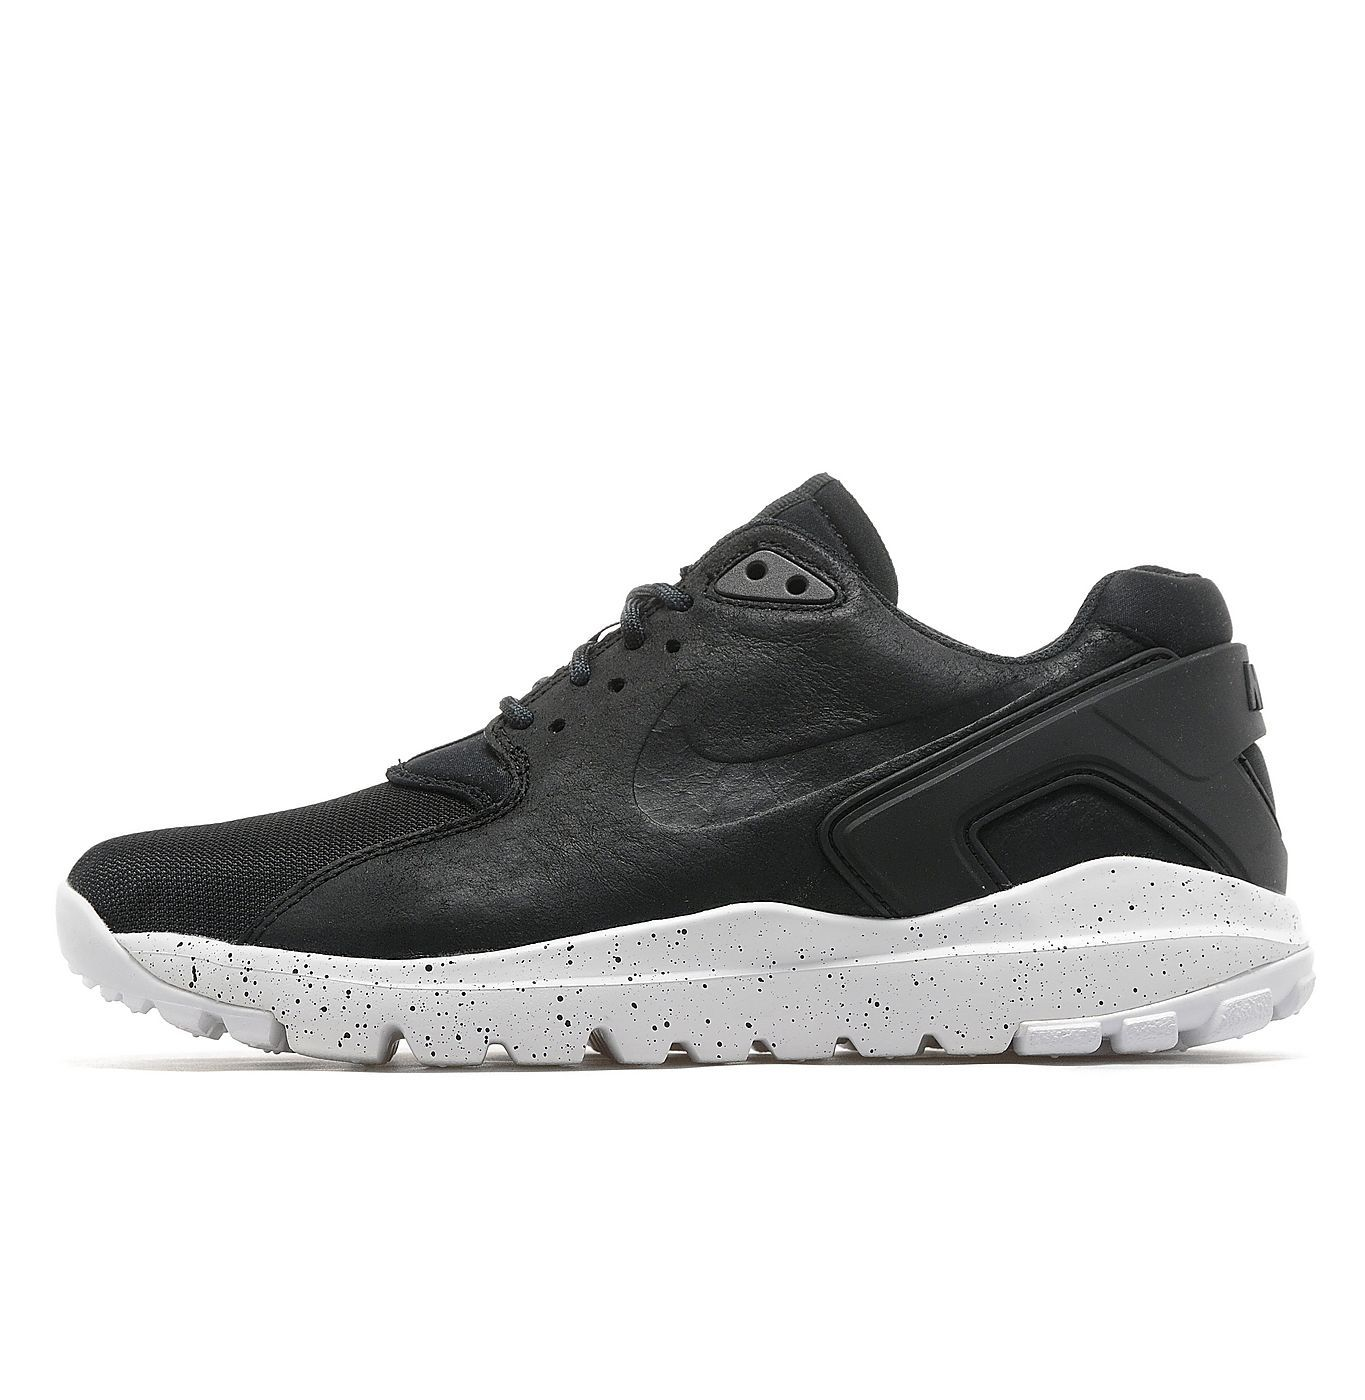 Nike Koth Ultra Low - Shop online for Nike Koth Ultra Low with JD Sports,  the UK's leading sports fashion retailer.